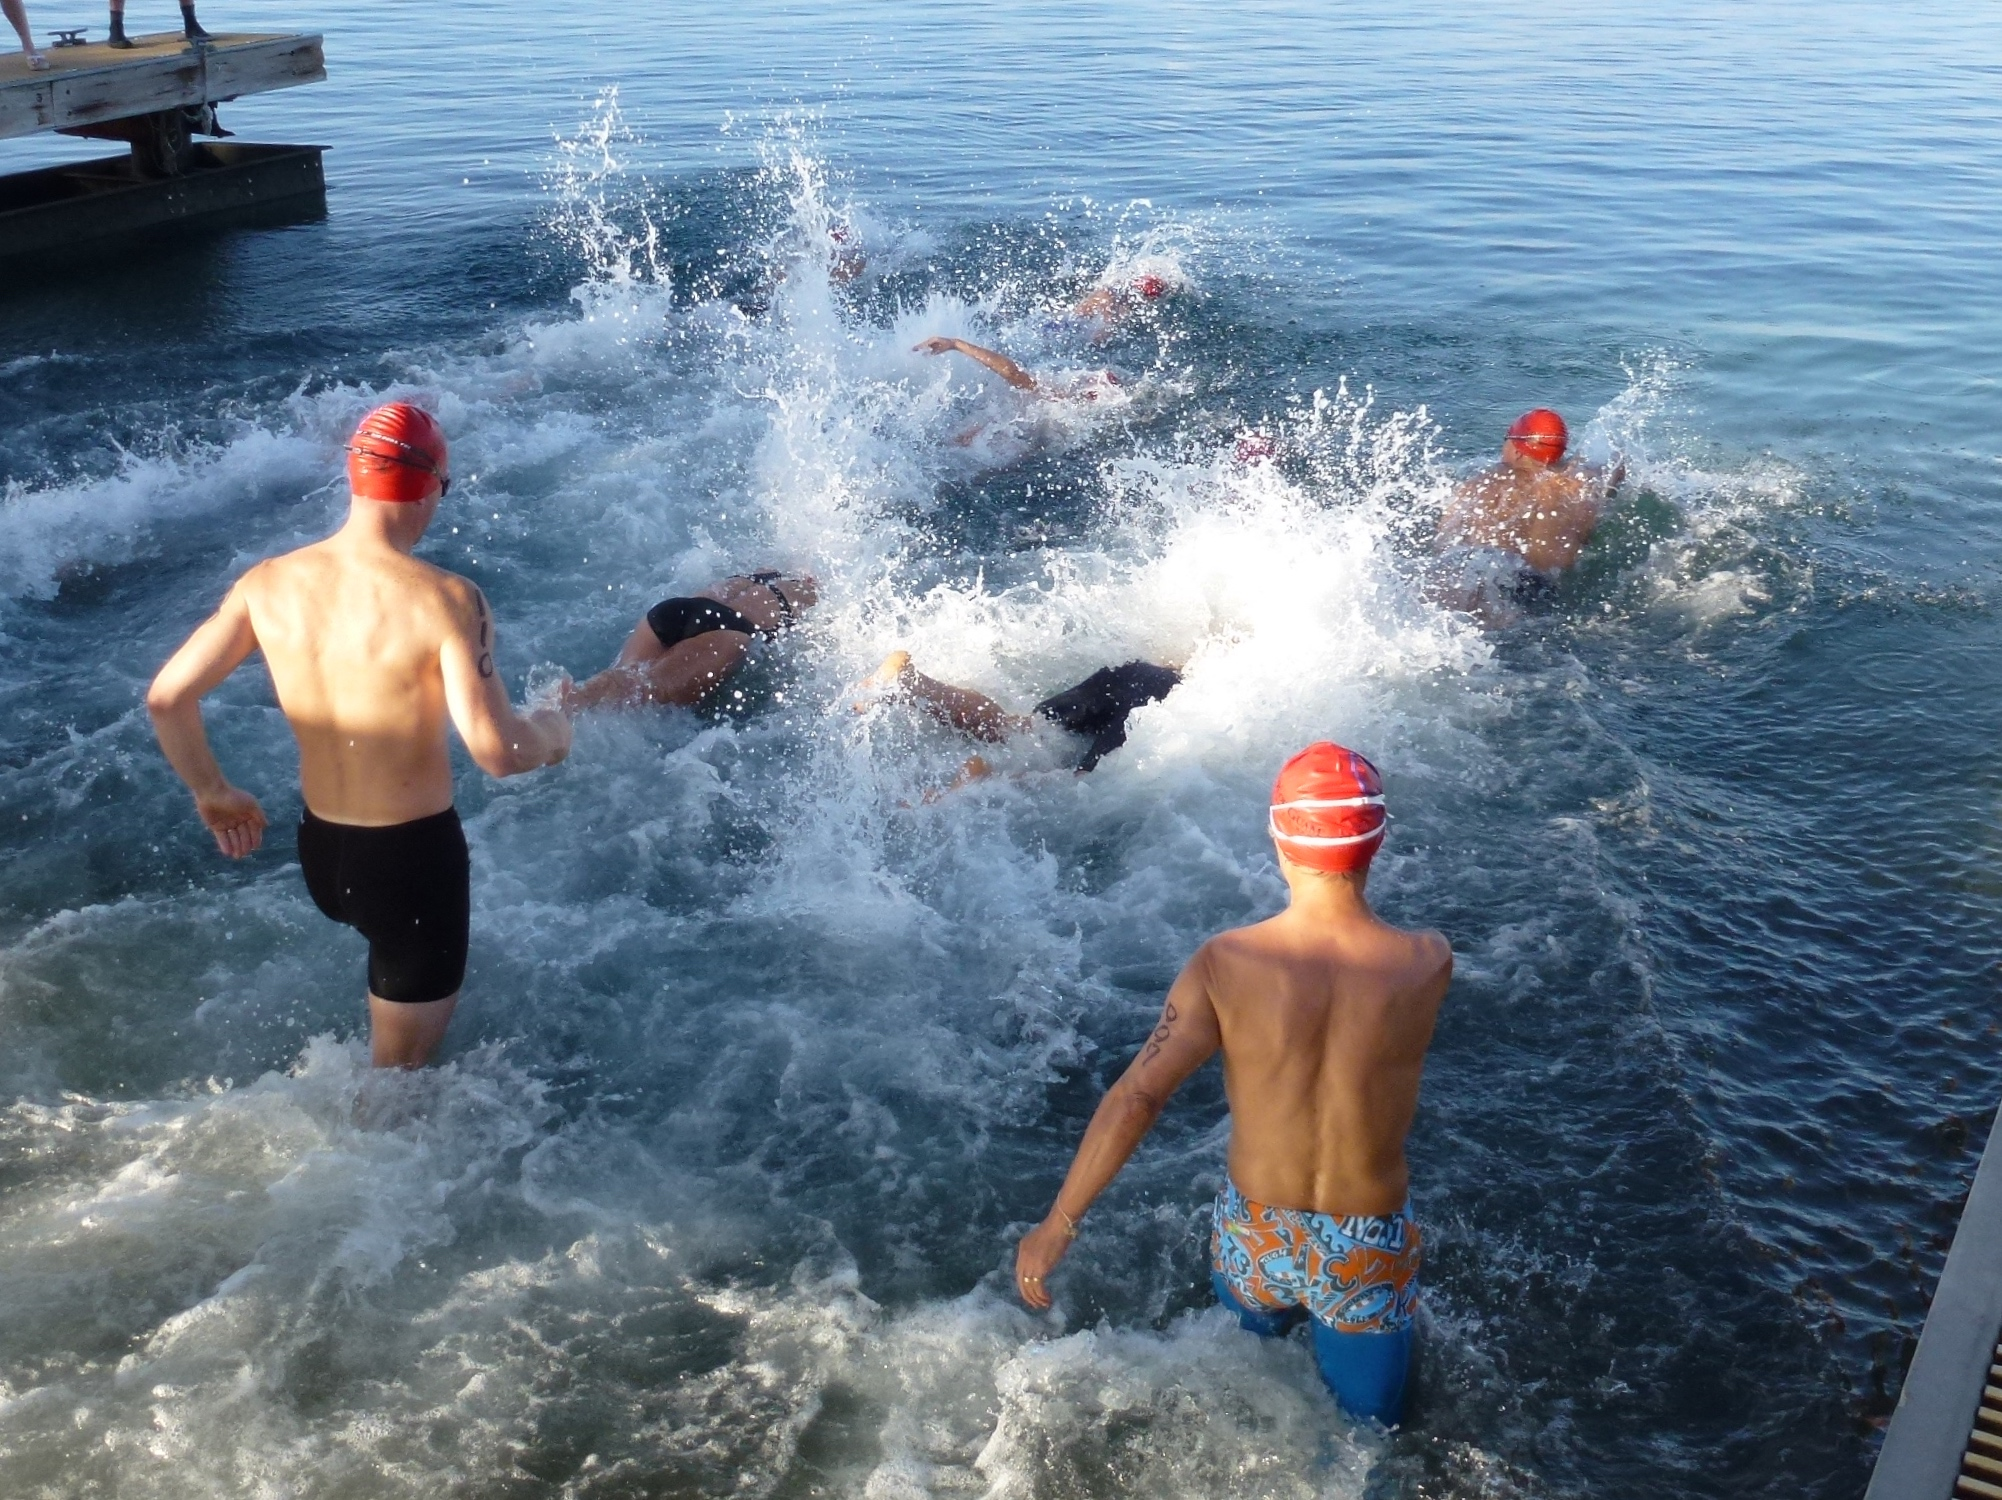 Swimmers enter the water at the start of the race.